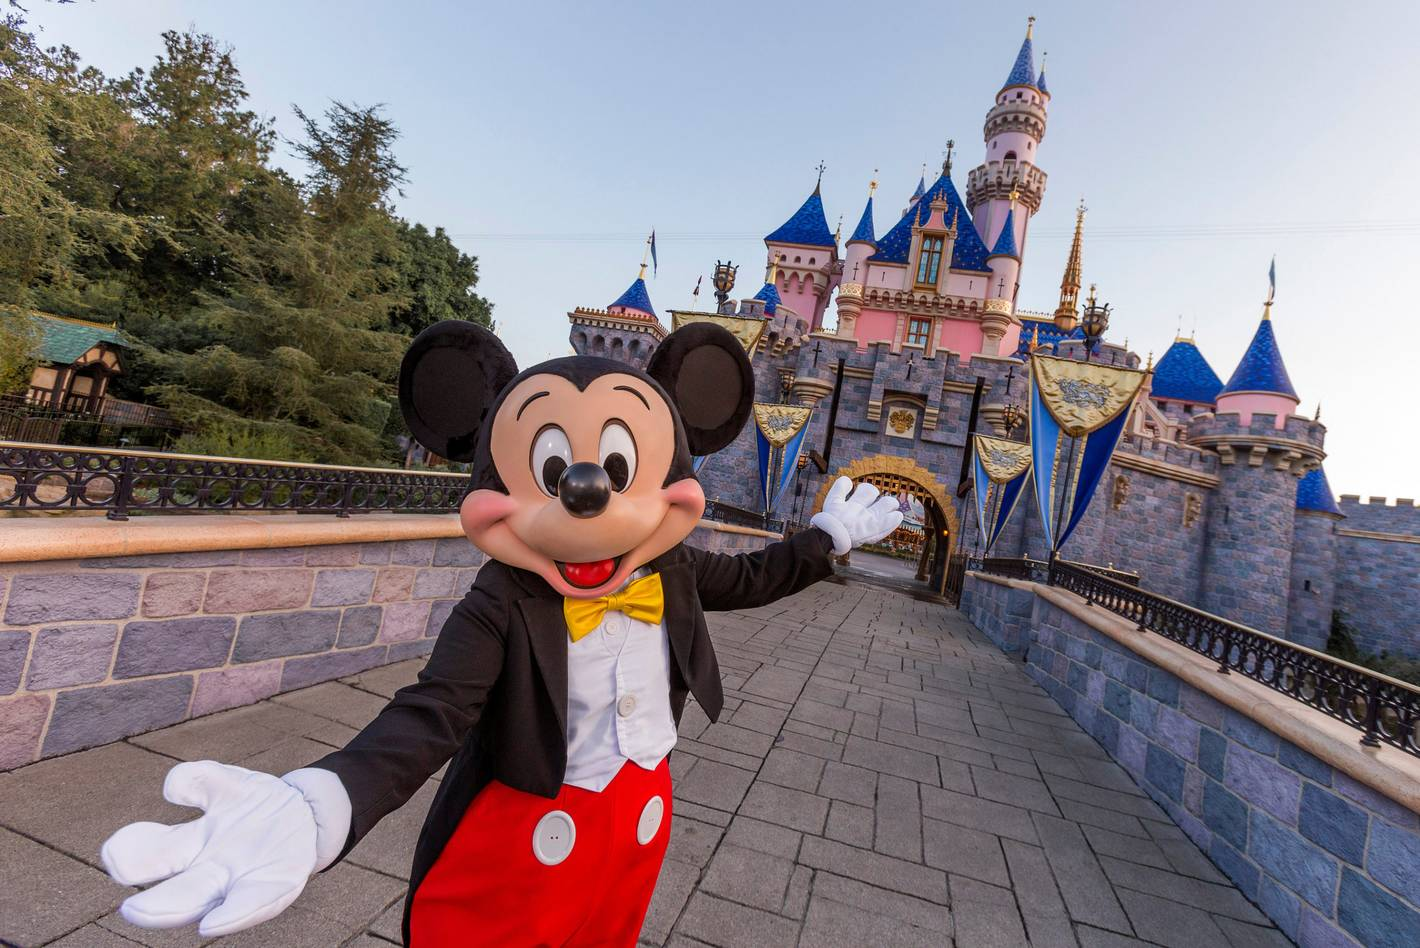 Disneyland will be open to guests from outside of its home state from June 15